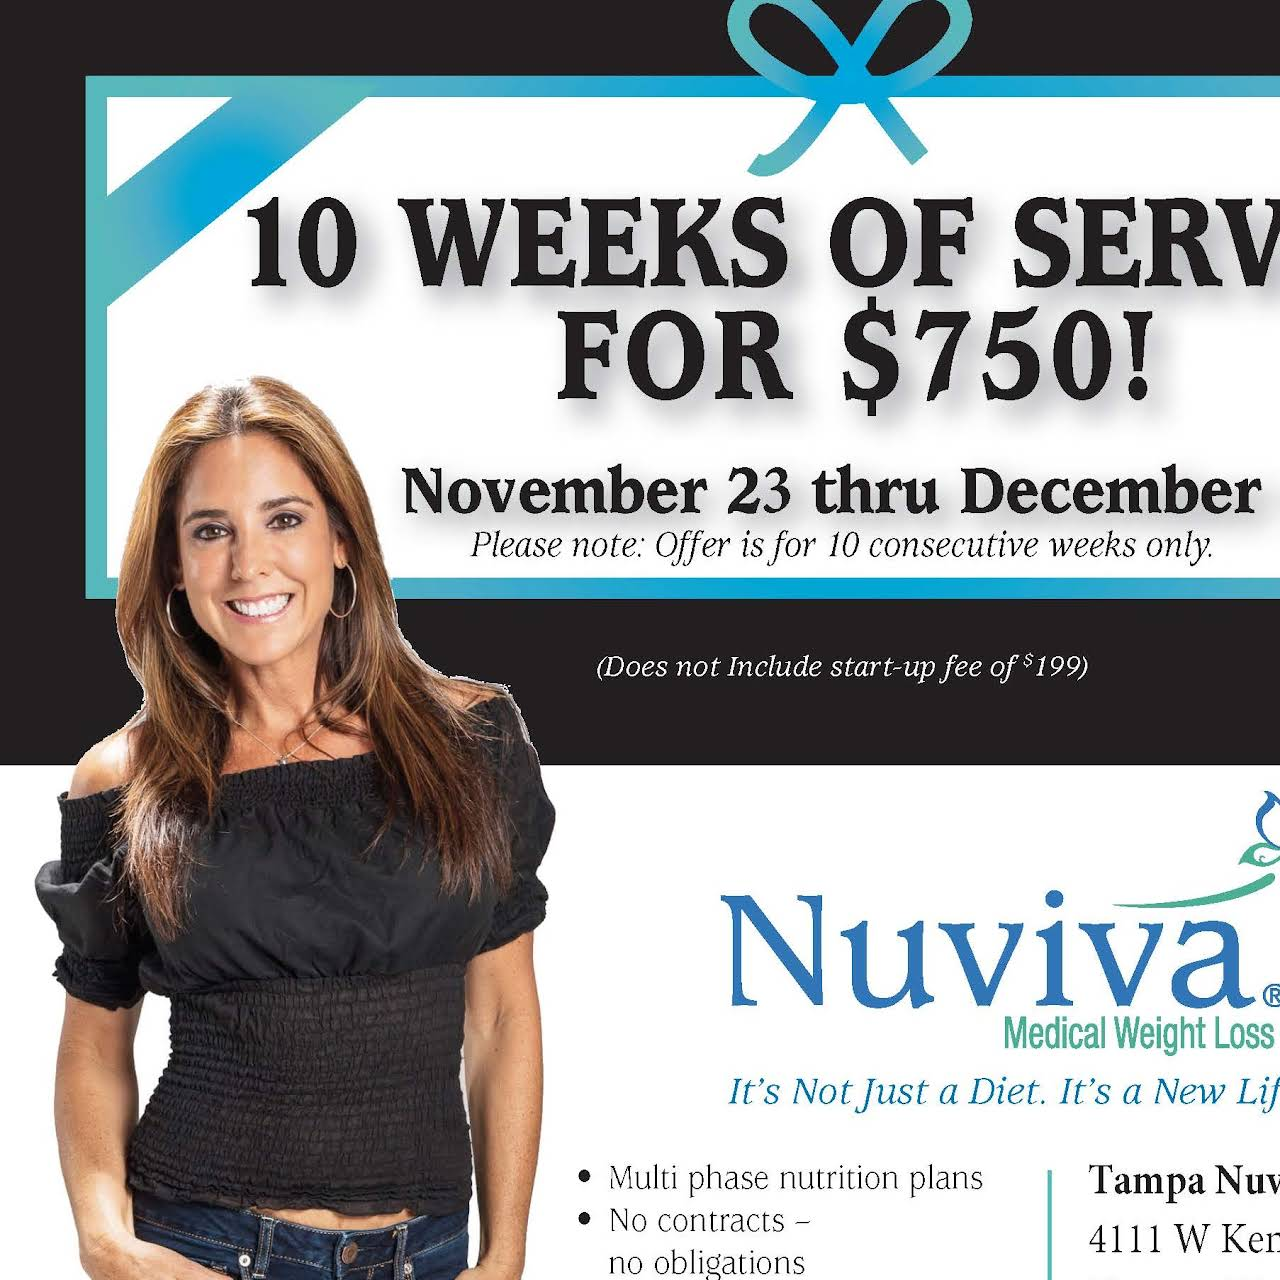 Nuviva Medical Weight Loss Clinic Of Tampa Medical Center In Tampa